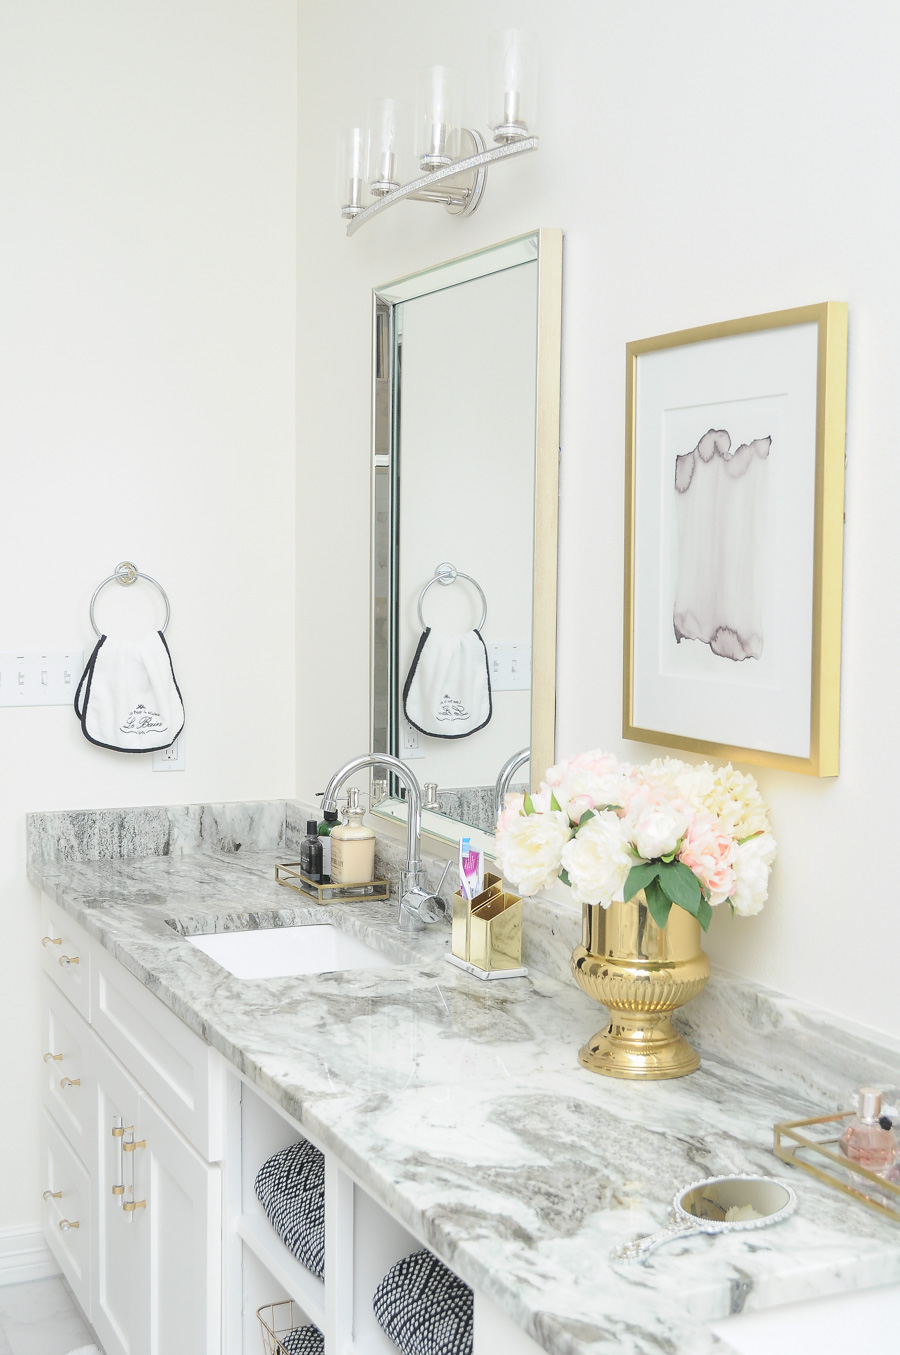 Black and white decor accents pair well with the bright white and gold color palette in this master bathroom. So many glamorous and sparkling touches!